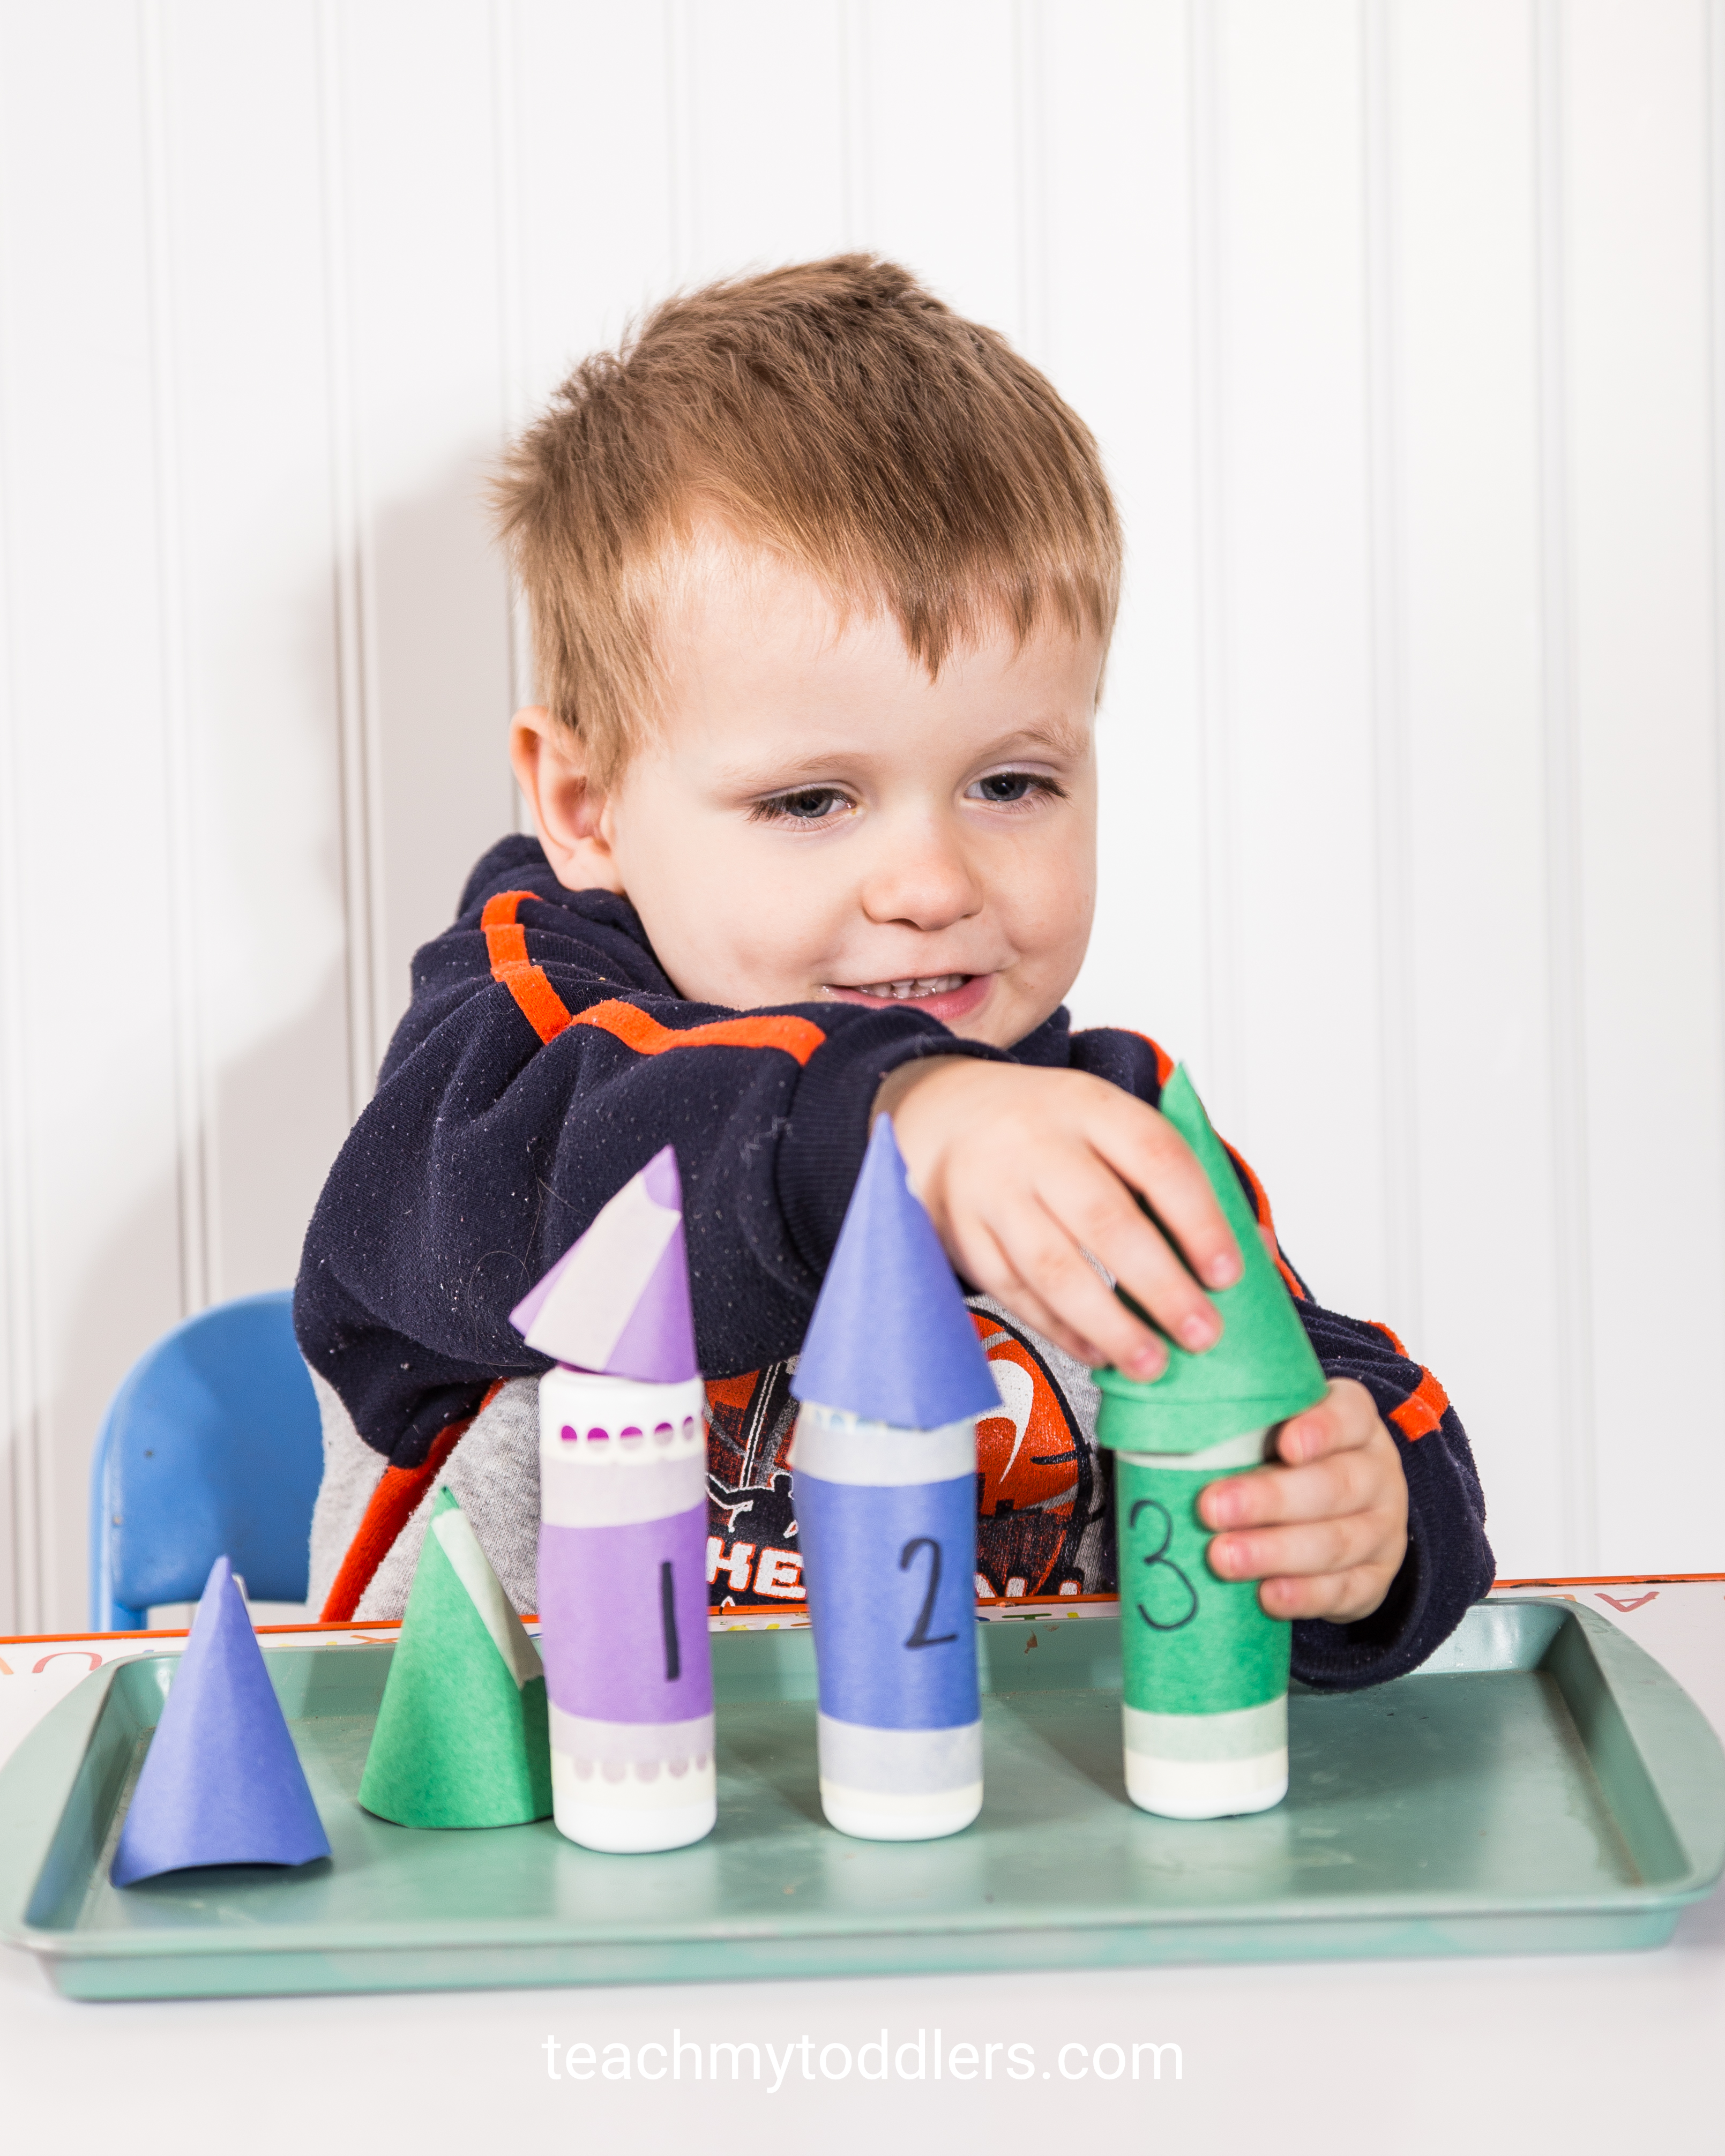 Use these exciting h is for hat activities to teach your toddlers the letter h